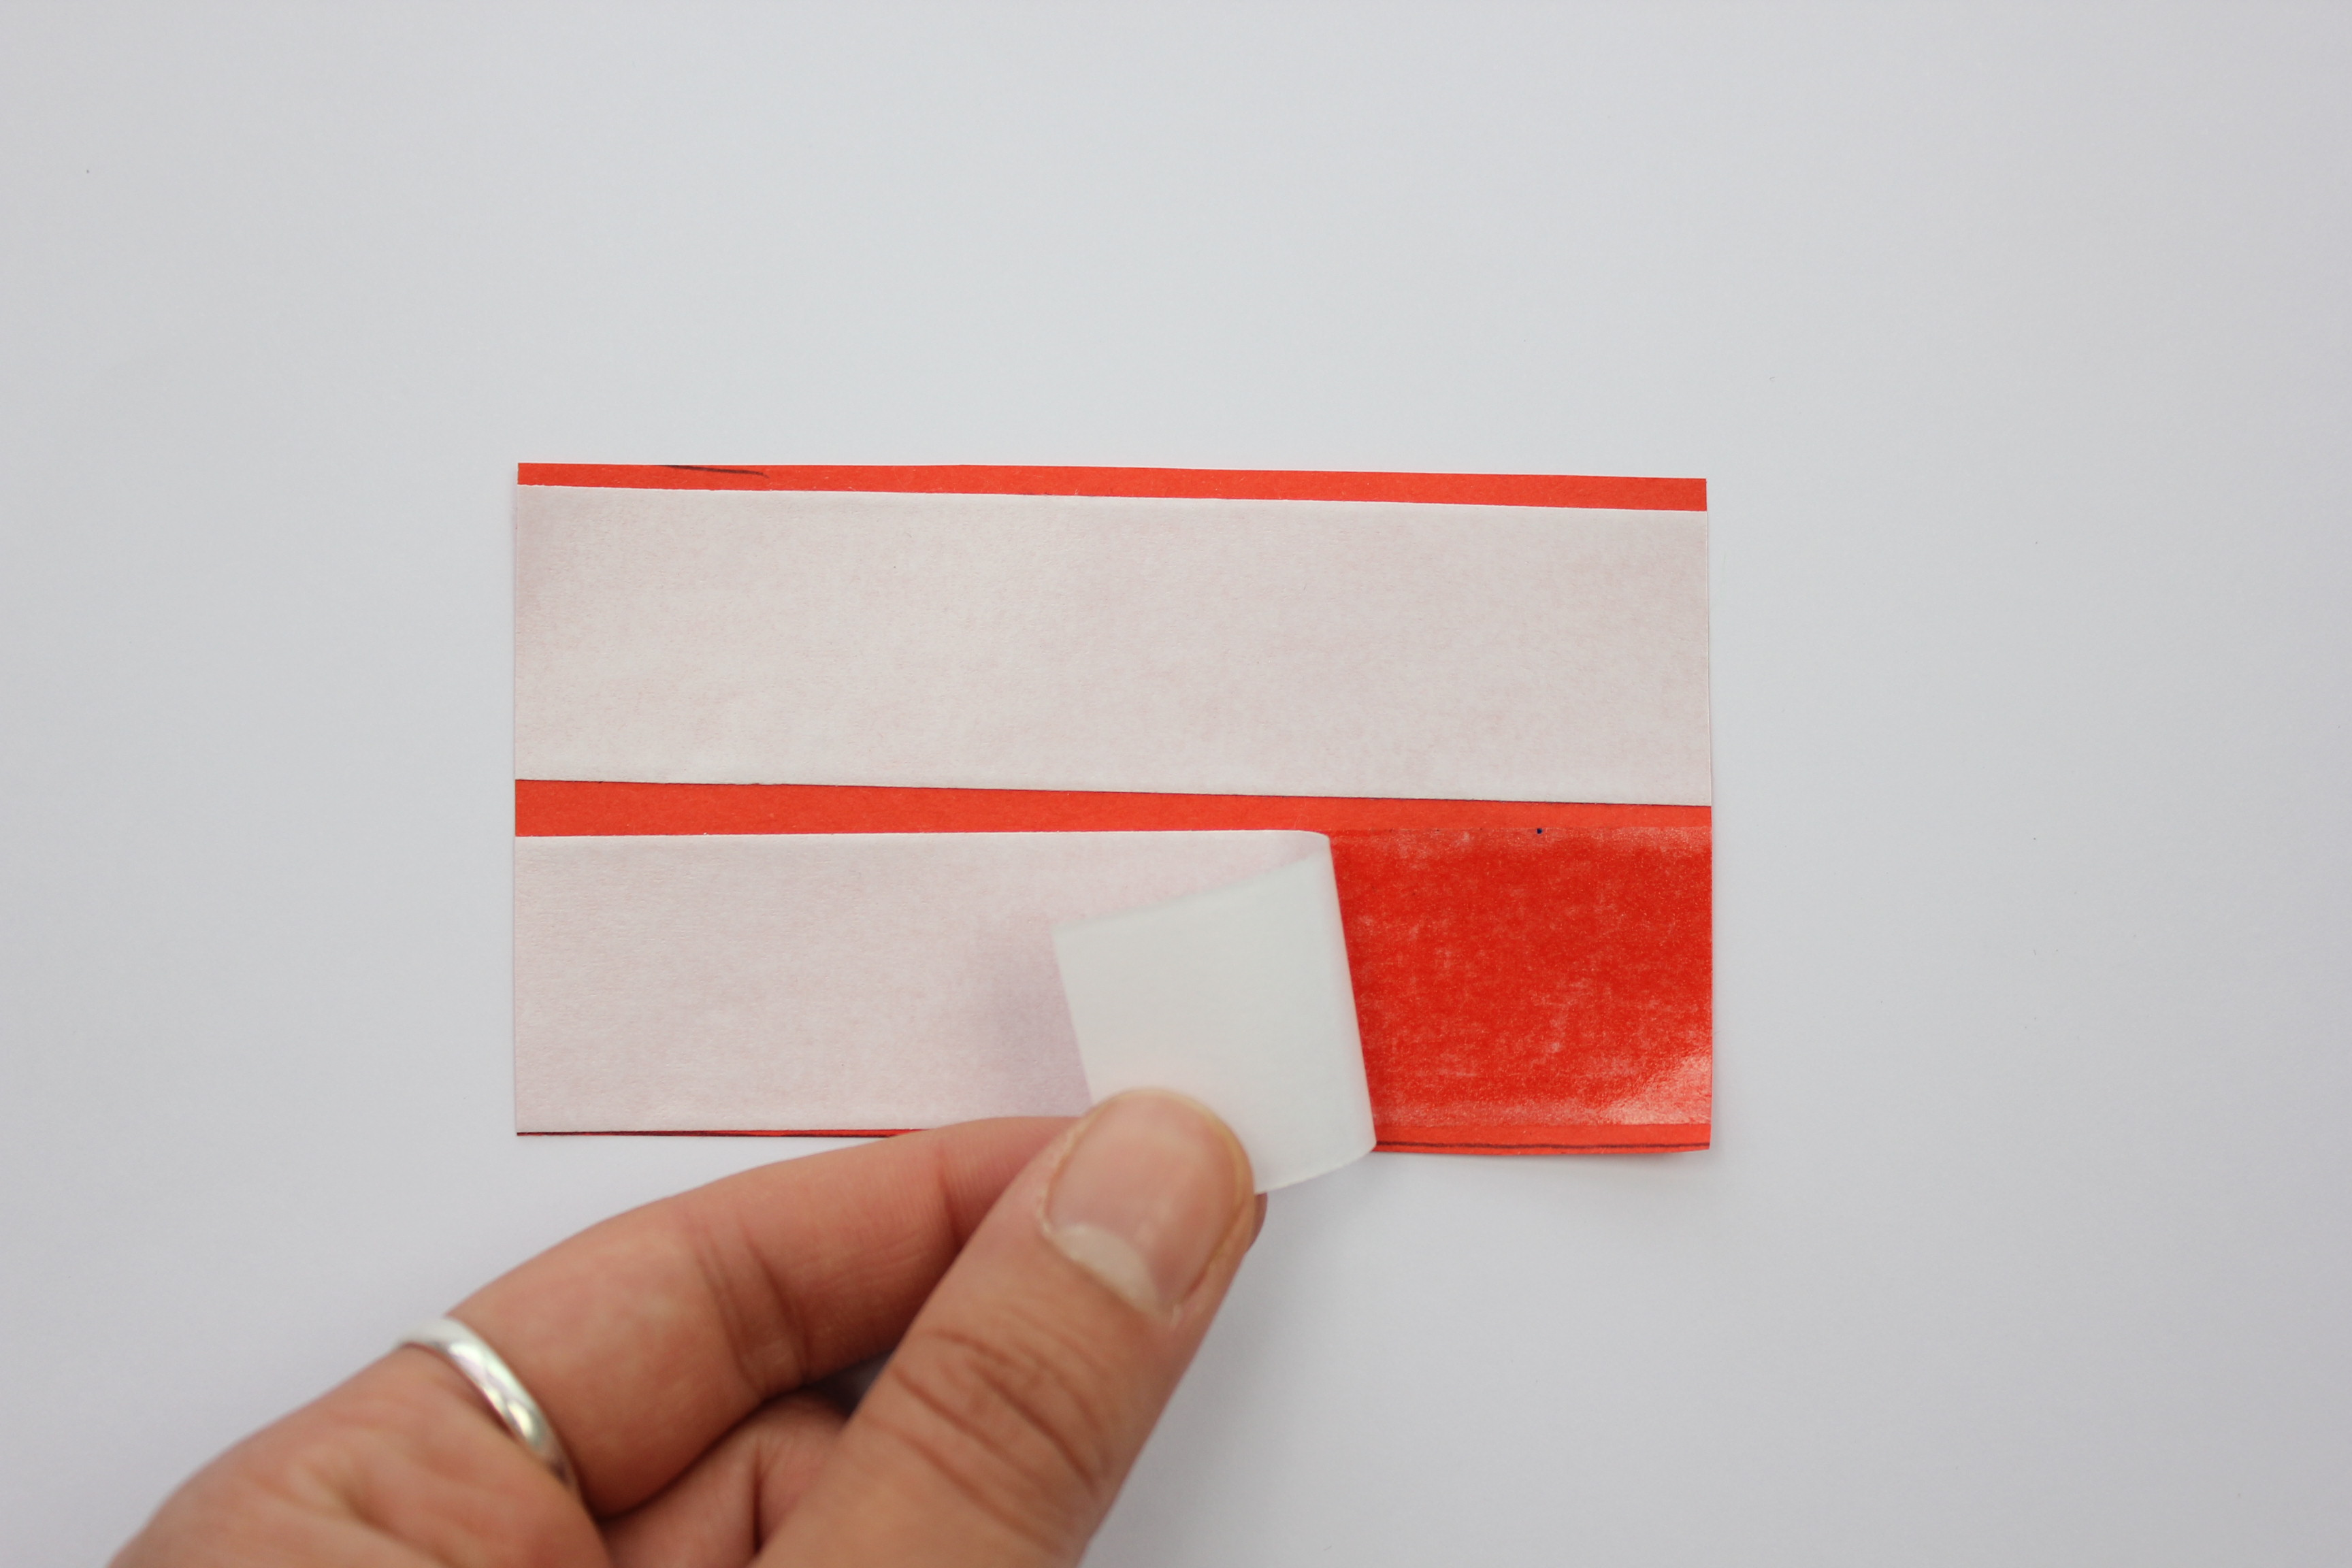 Peel off the white backing of the double sided tape on the red paper.